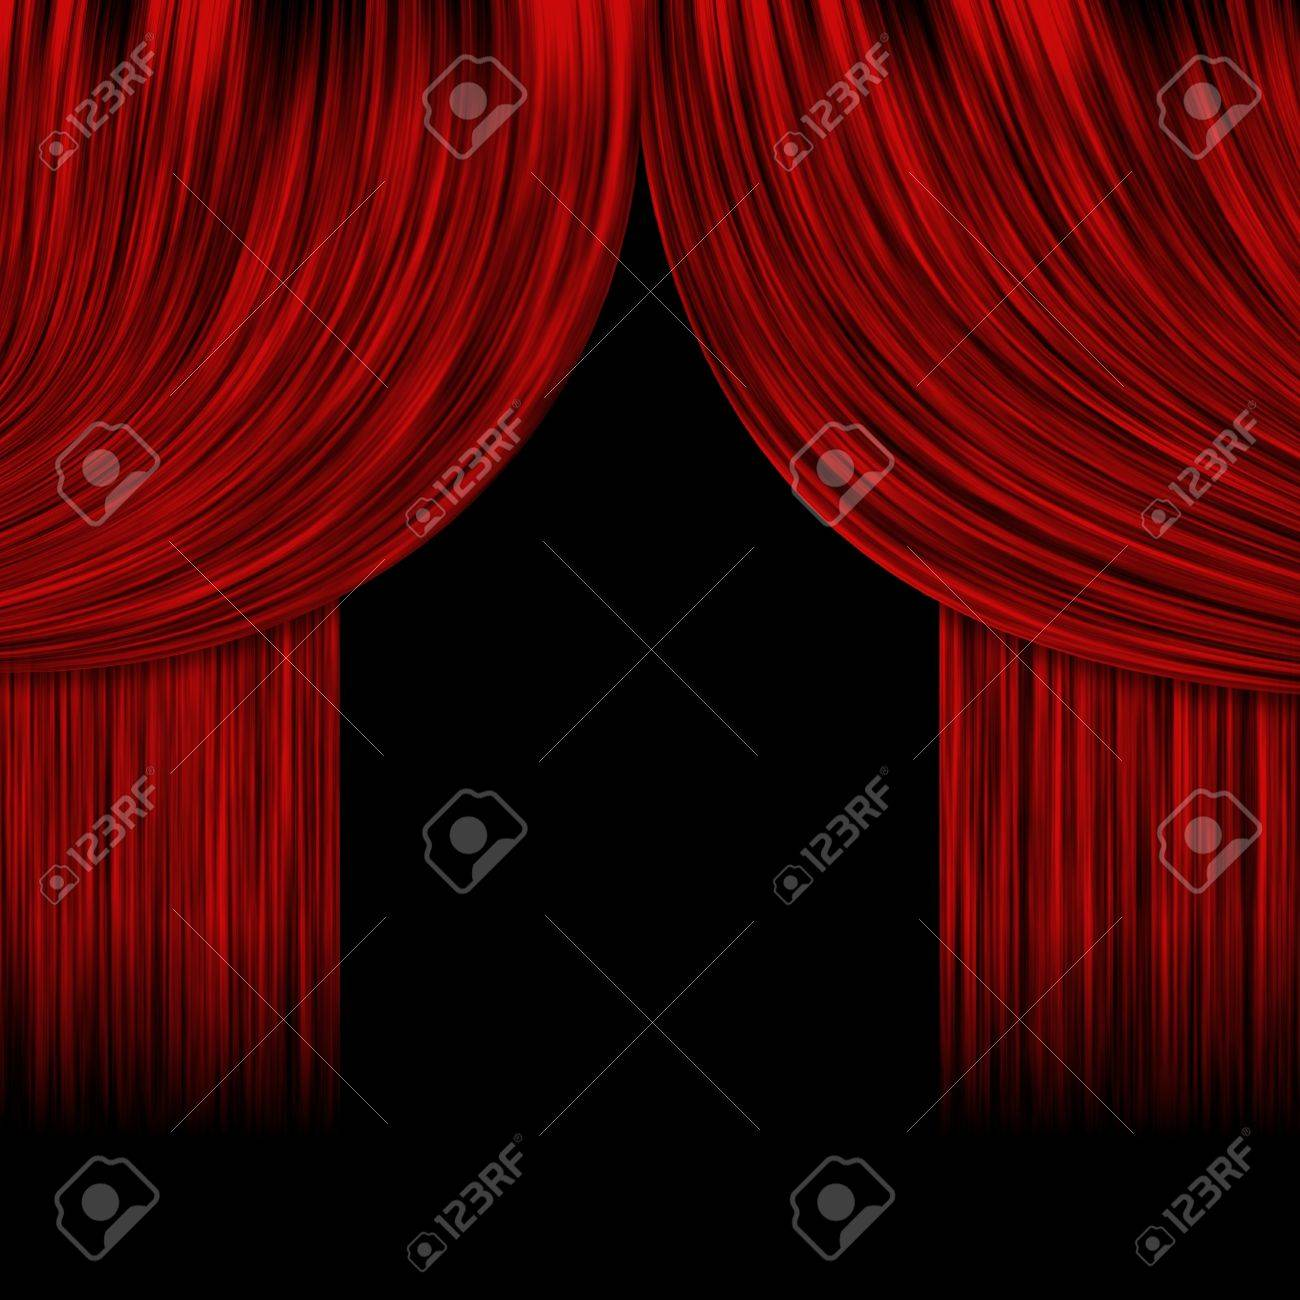 Open theater drapes or stage curtains royalty free stock image image - Illustration Of Open Theater Drapes Or Stage Curtains With A Black Background Stock Illustration